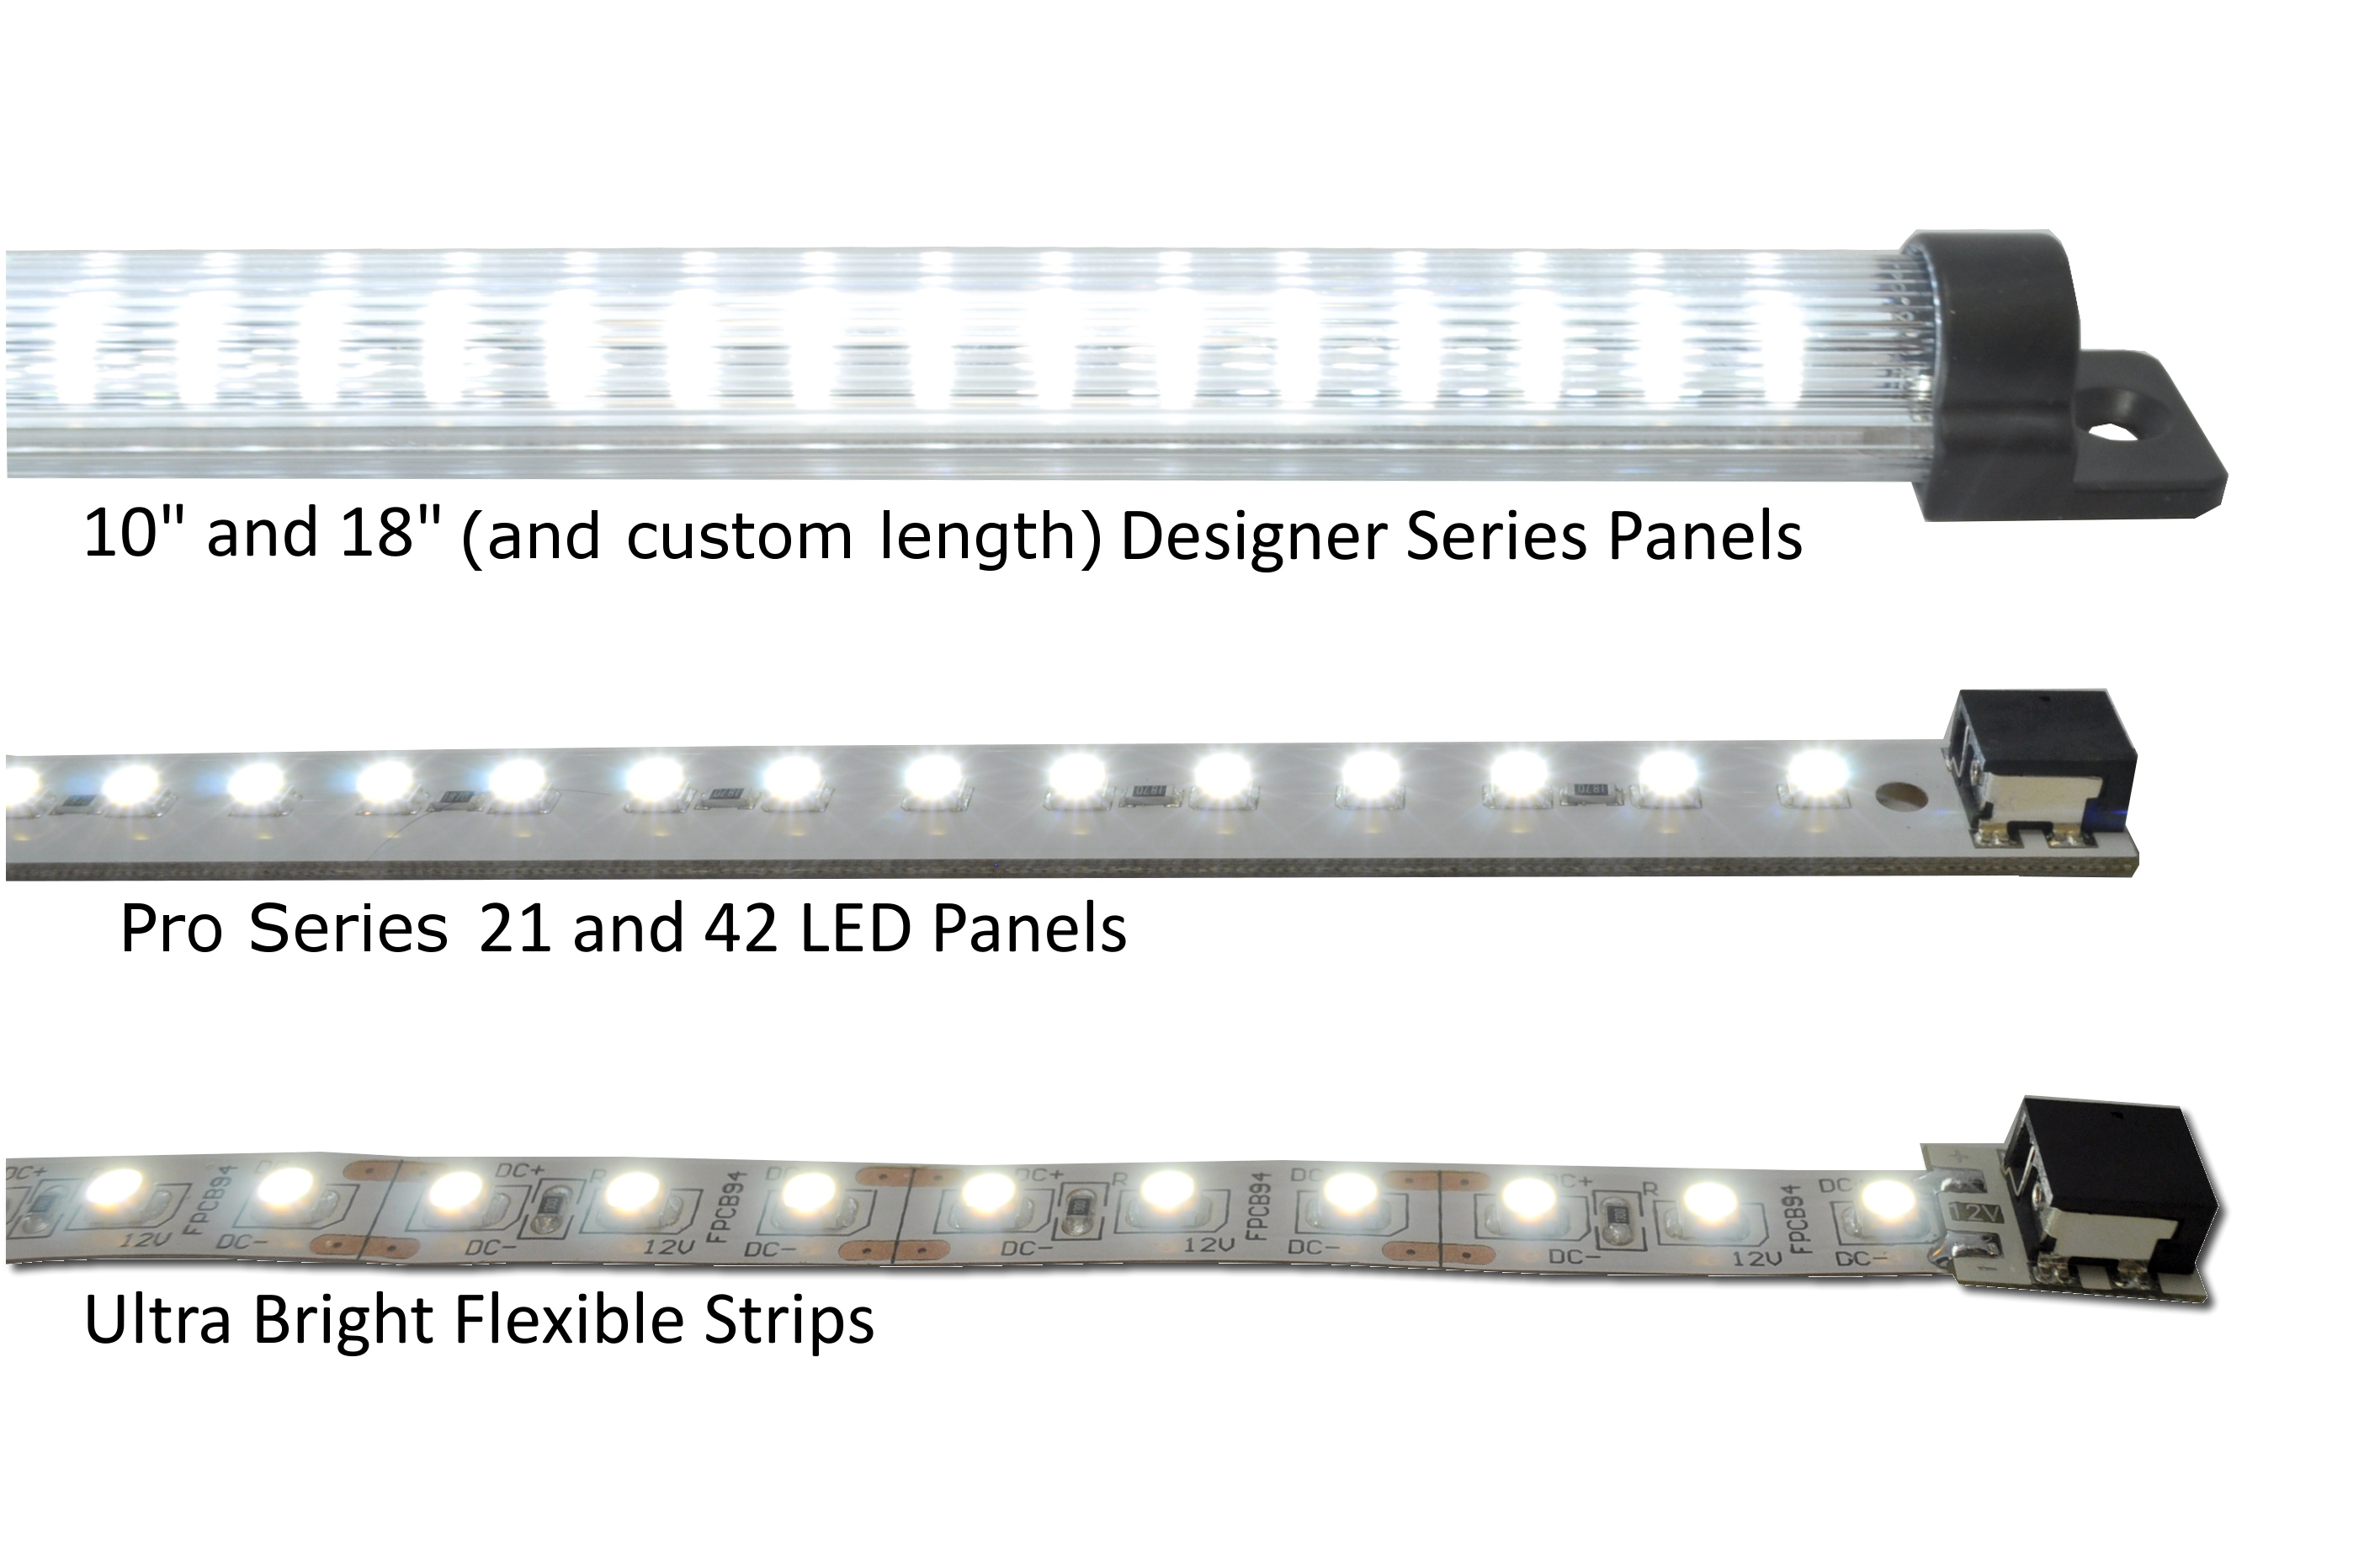 comparison of panels and flexible strips